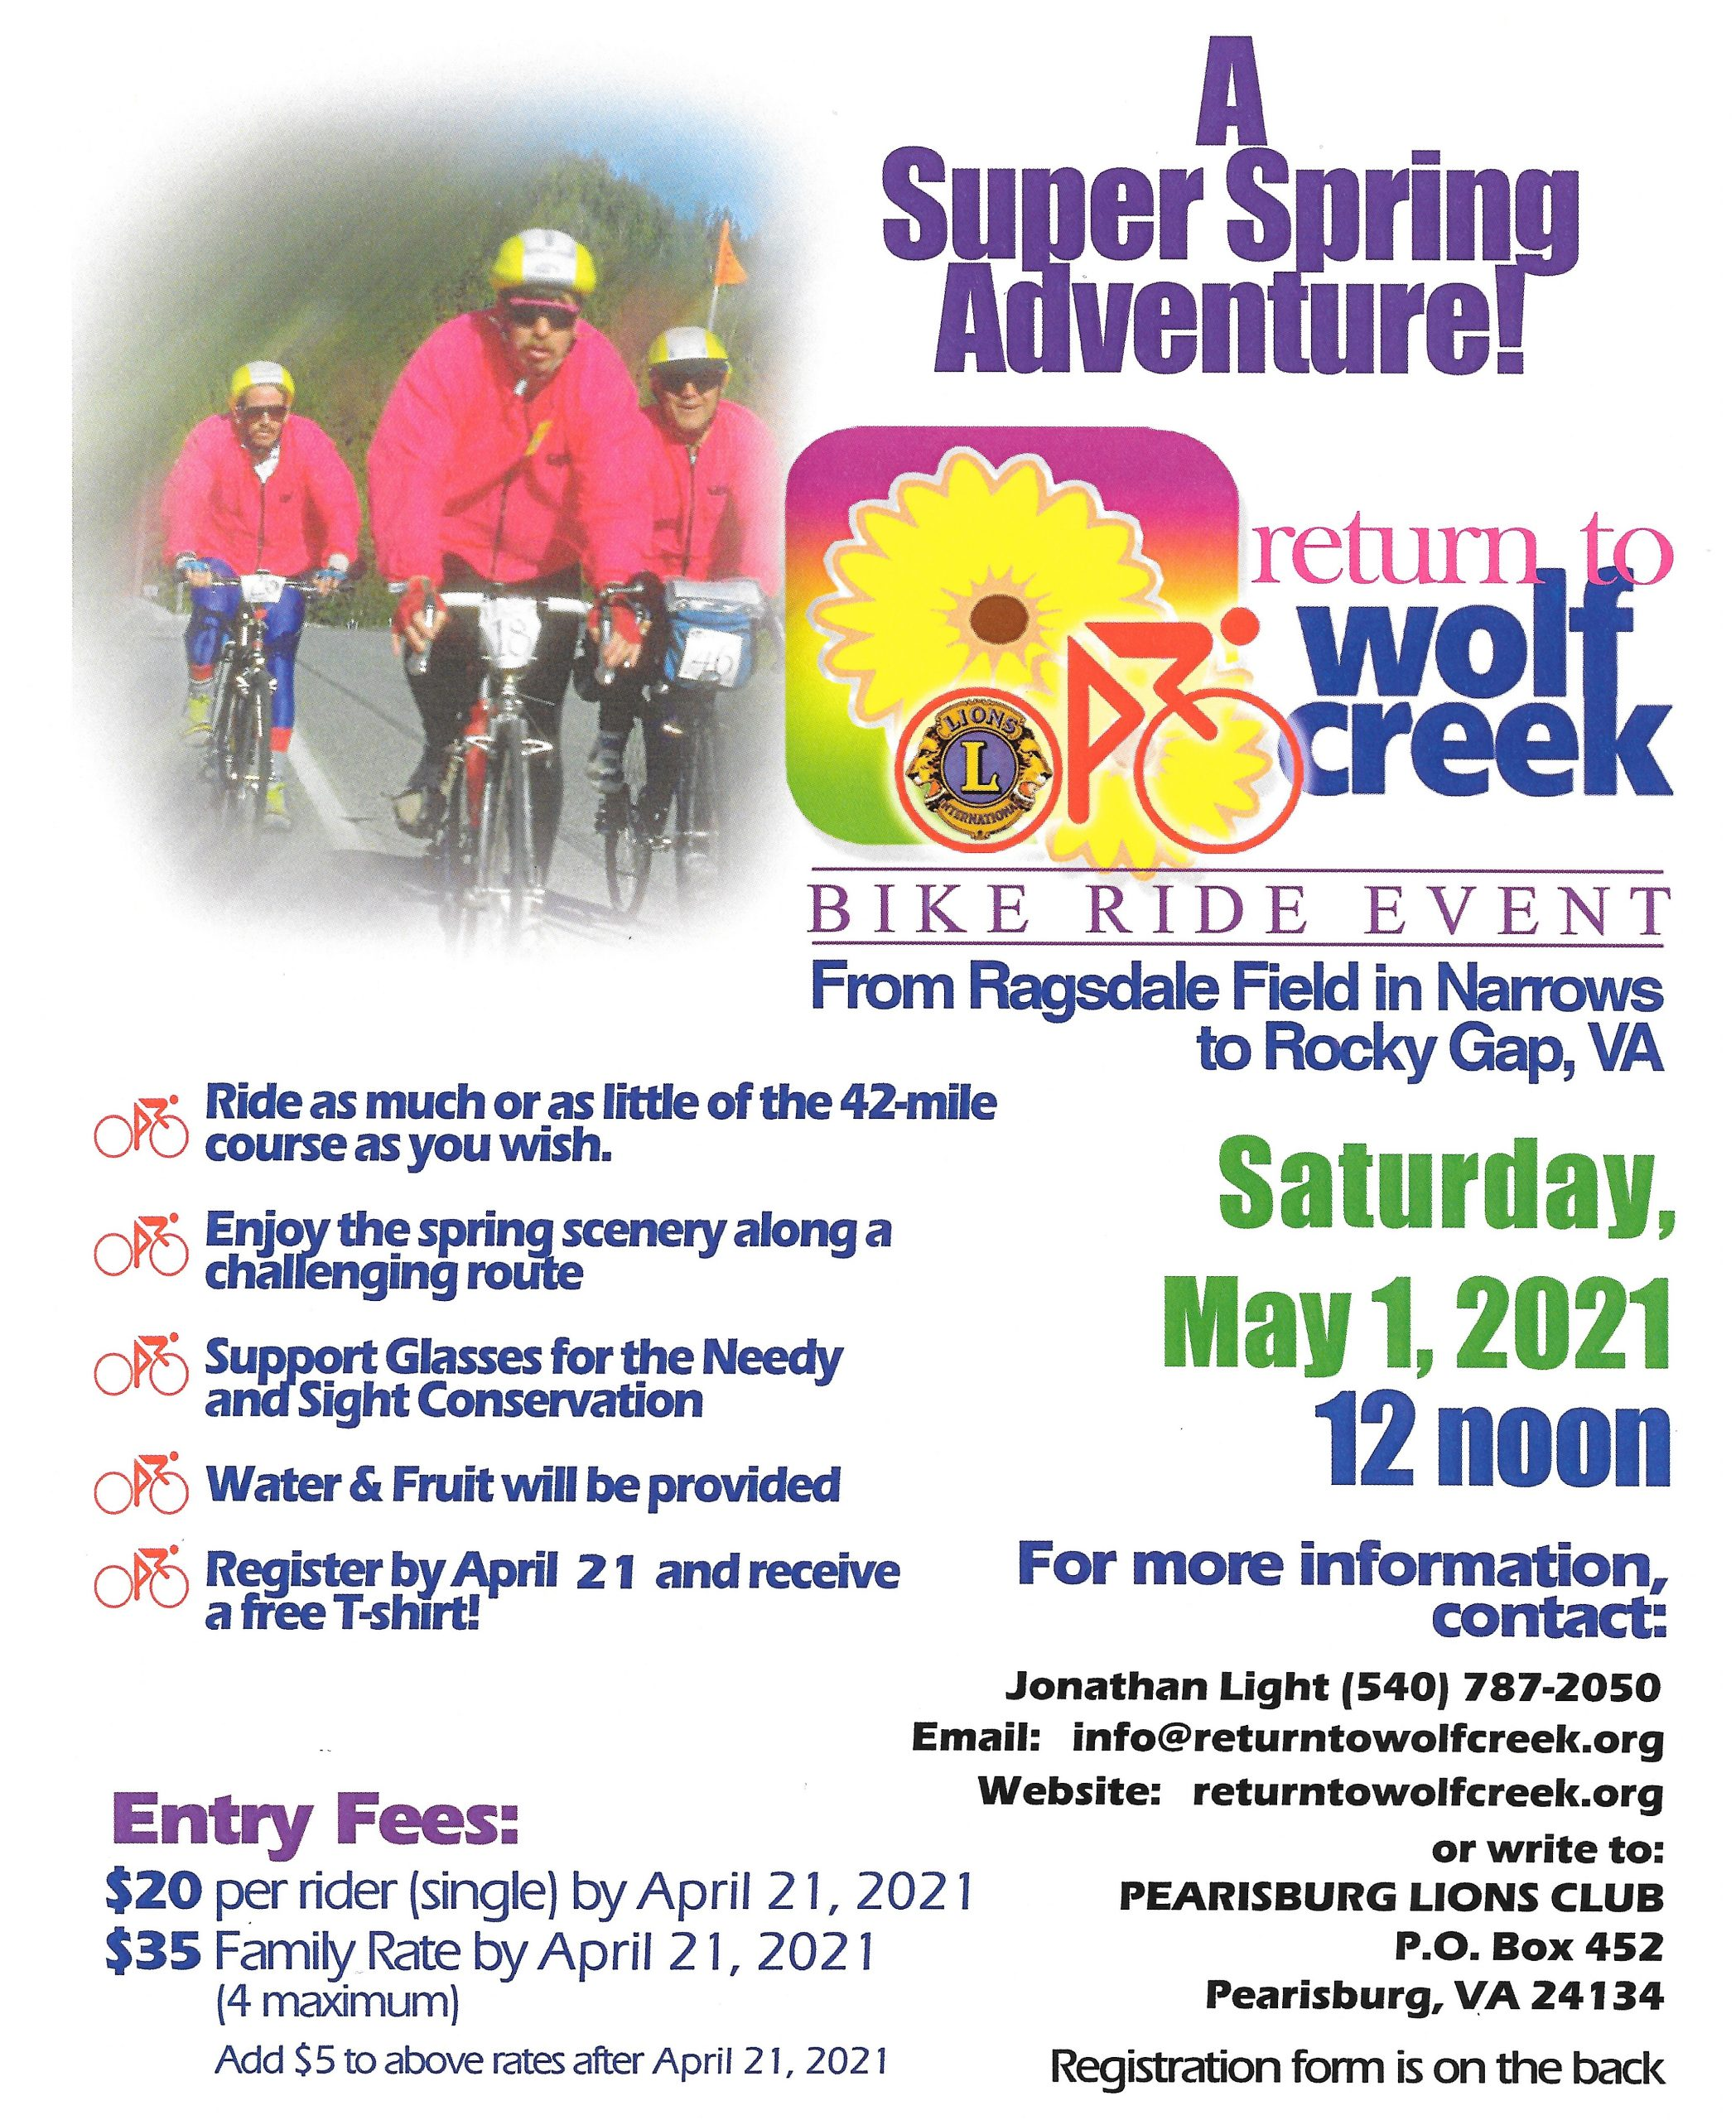 promo flyer for bike ride event